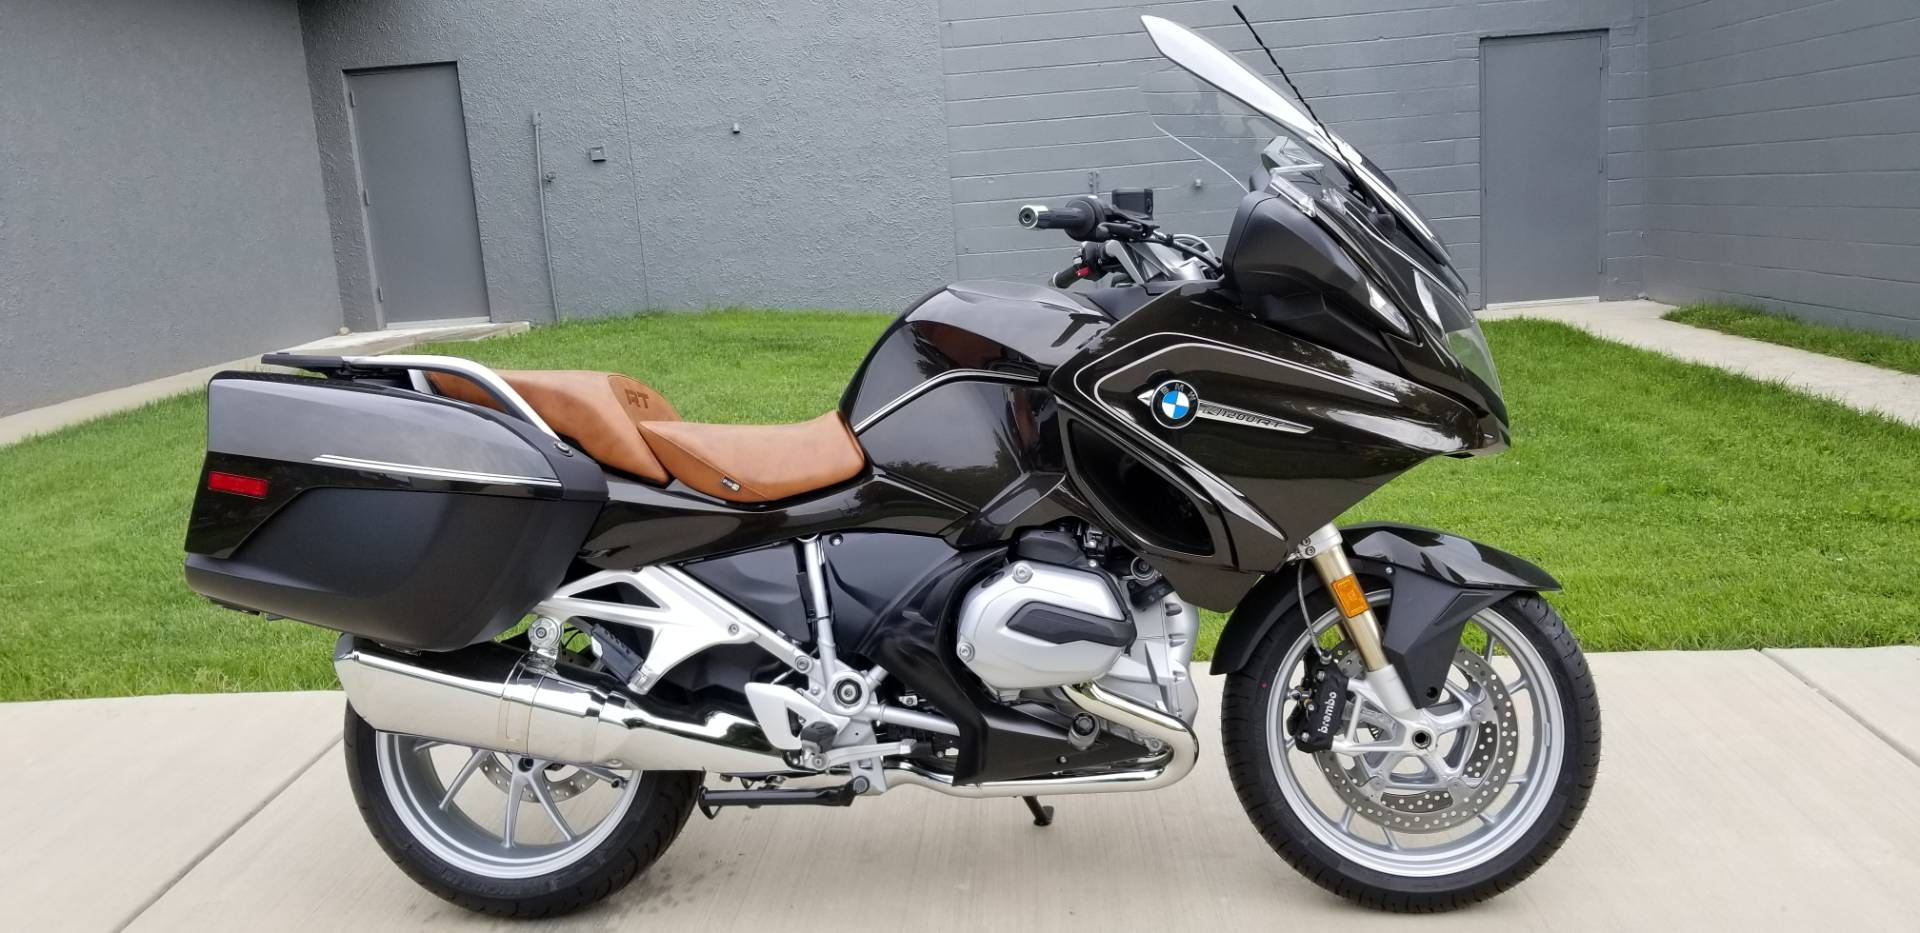 New 2018 Bmw R 1200 Rt Motorcycles In Gaithersburg Md Stock